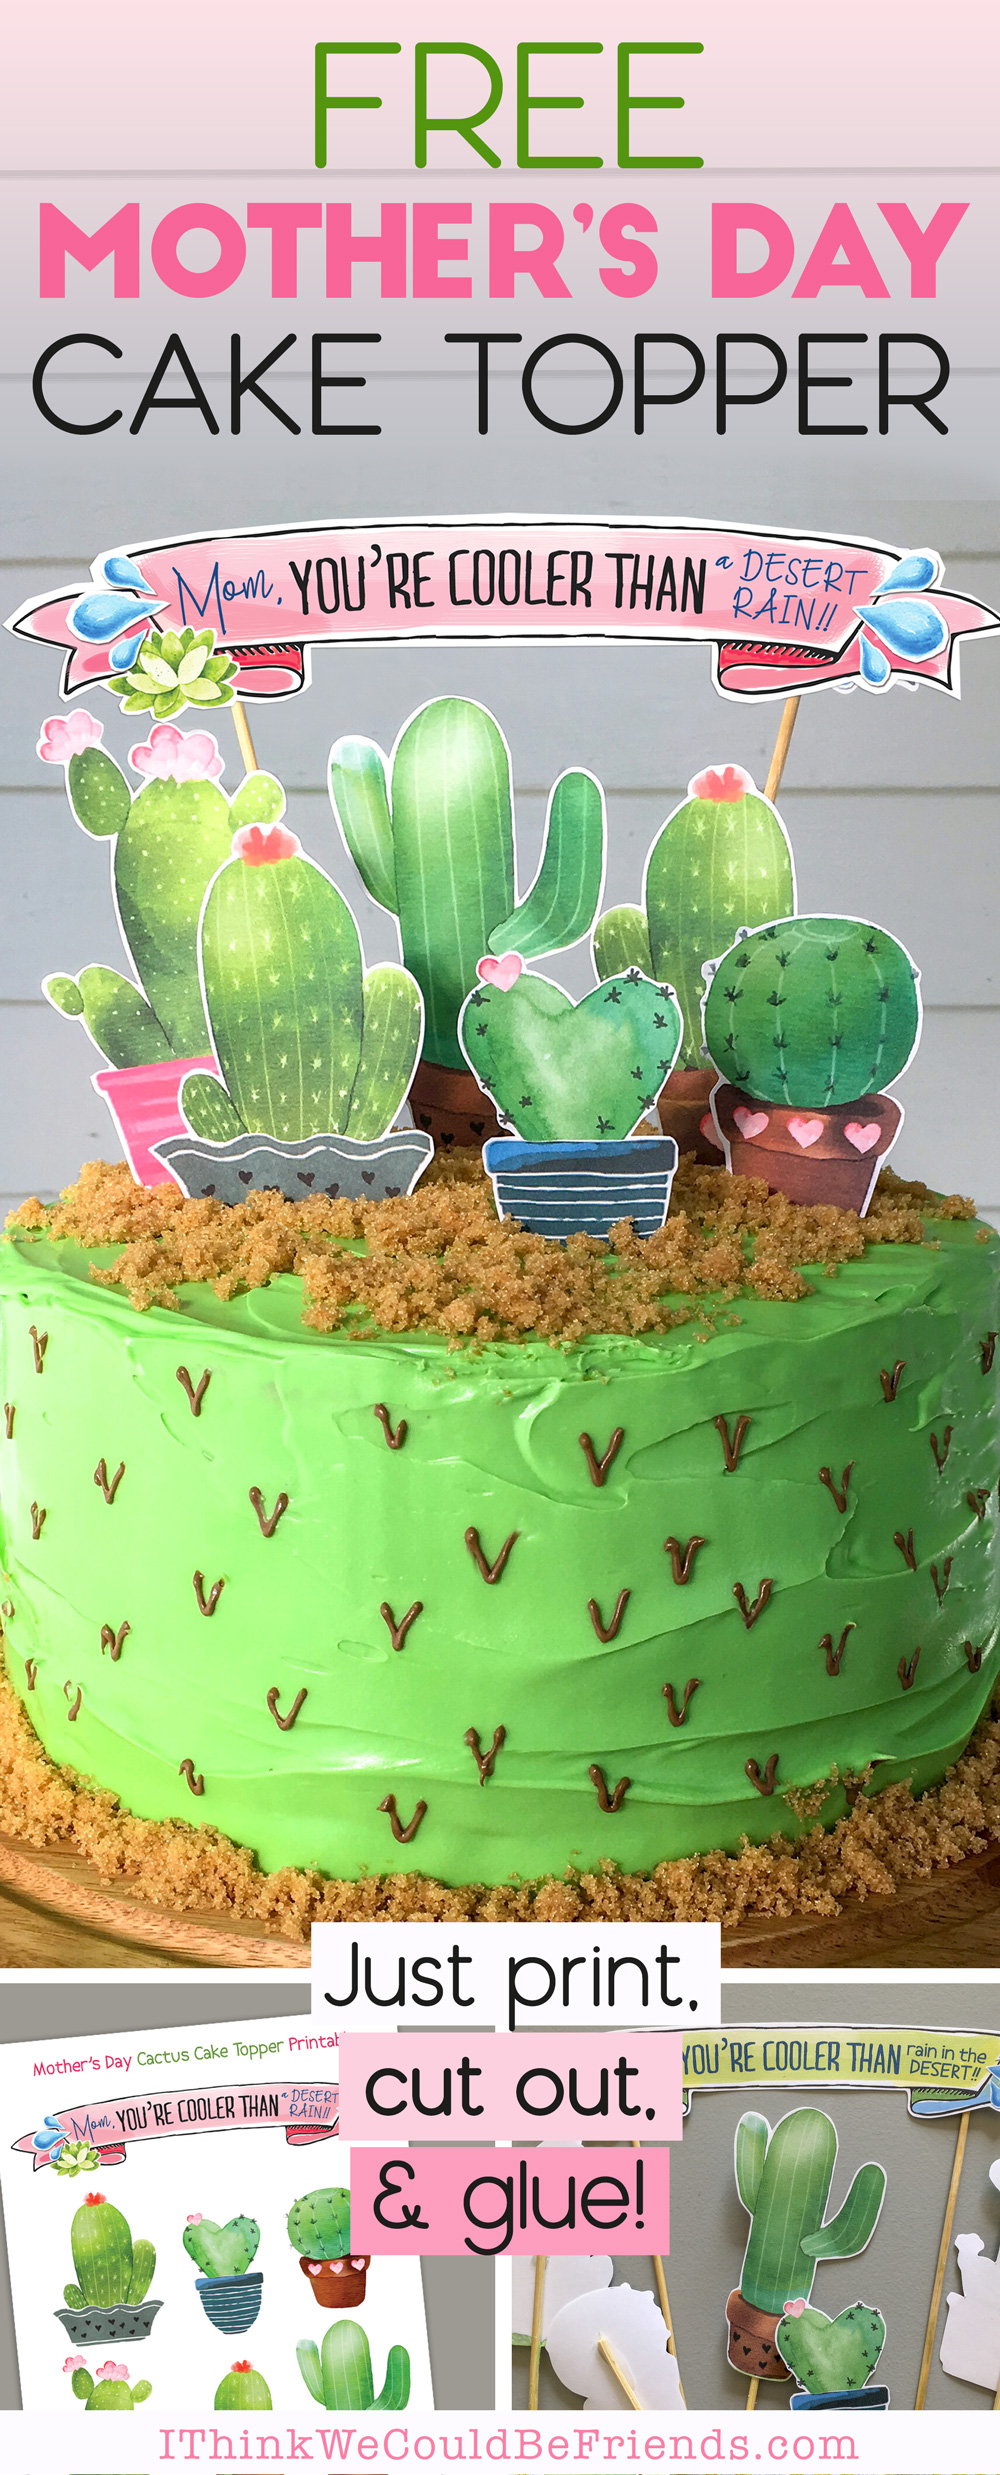 diy mother 39 s day cactus cake topper decoration free printable i think we could be friends. Black Bedroom Furniture Sets. Home Design Ideas